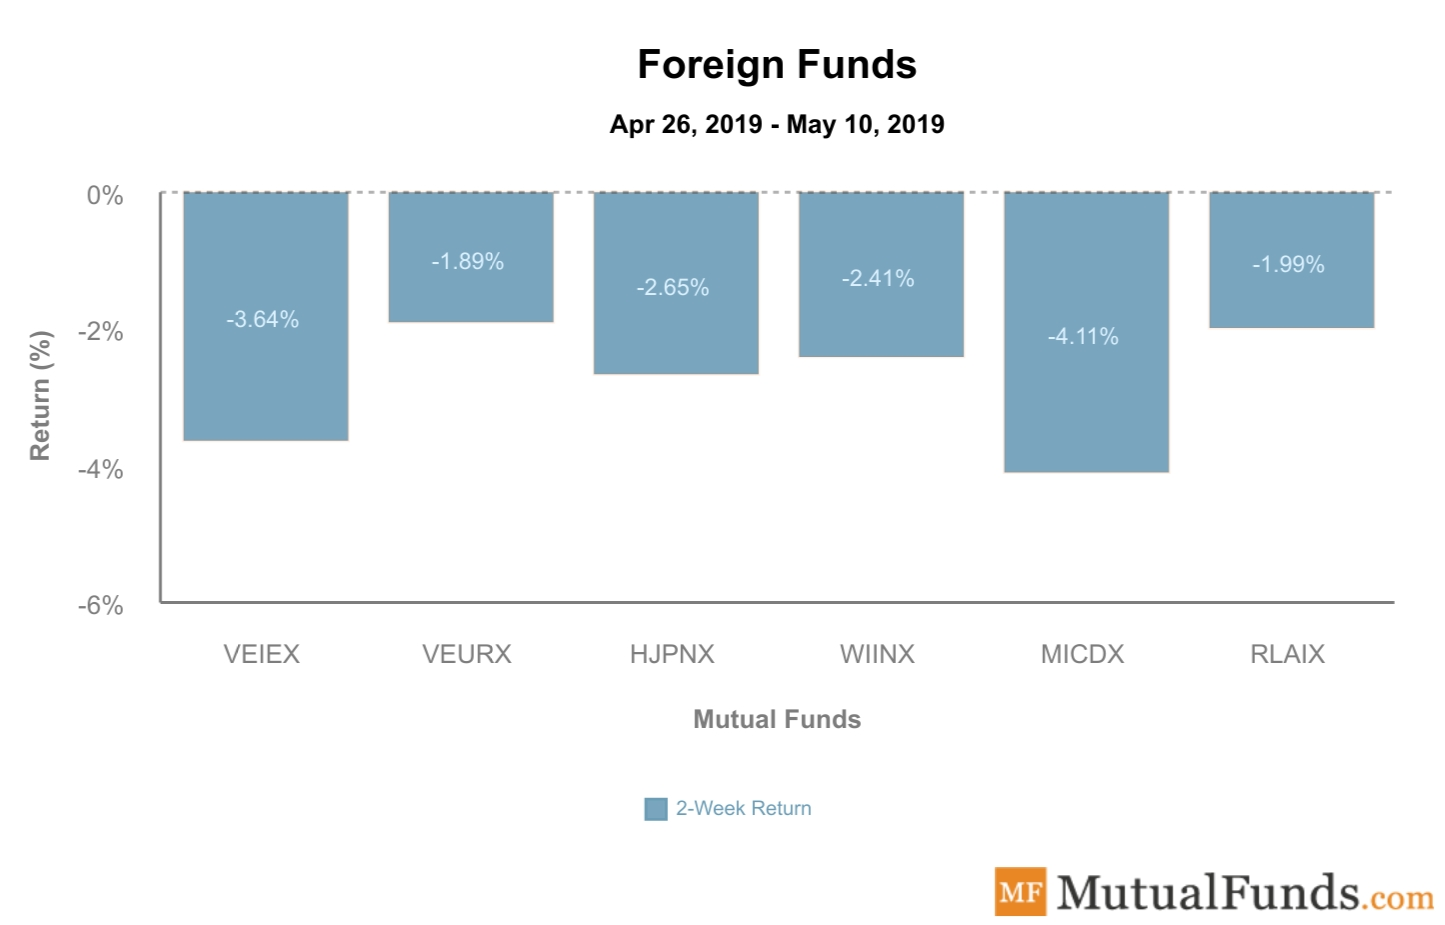 Foreign Funds Performance May 14